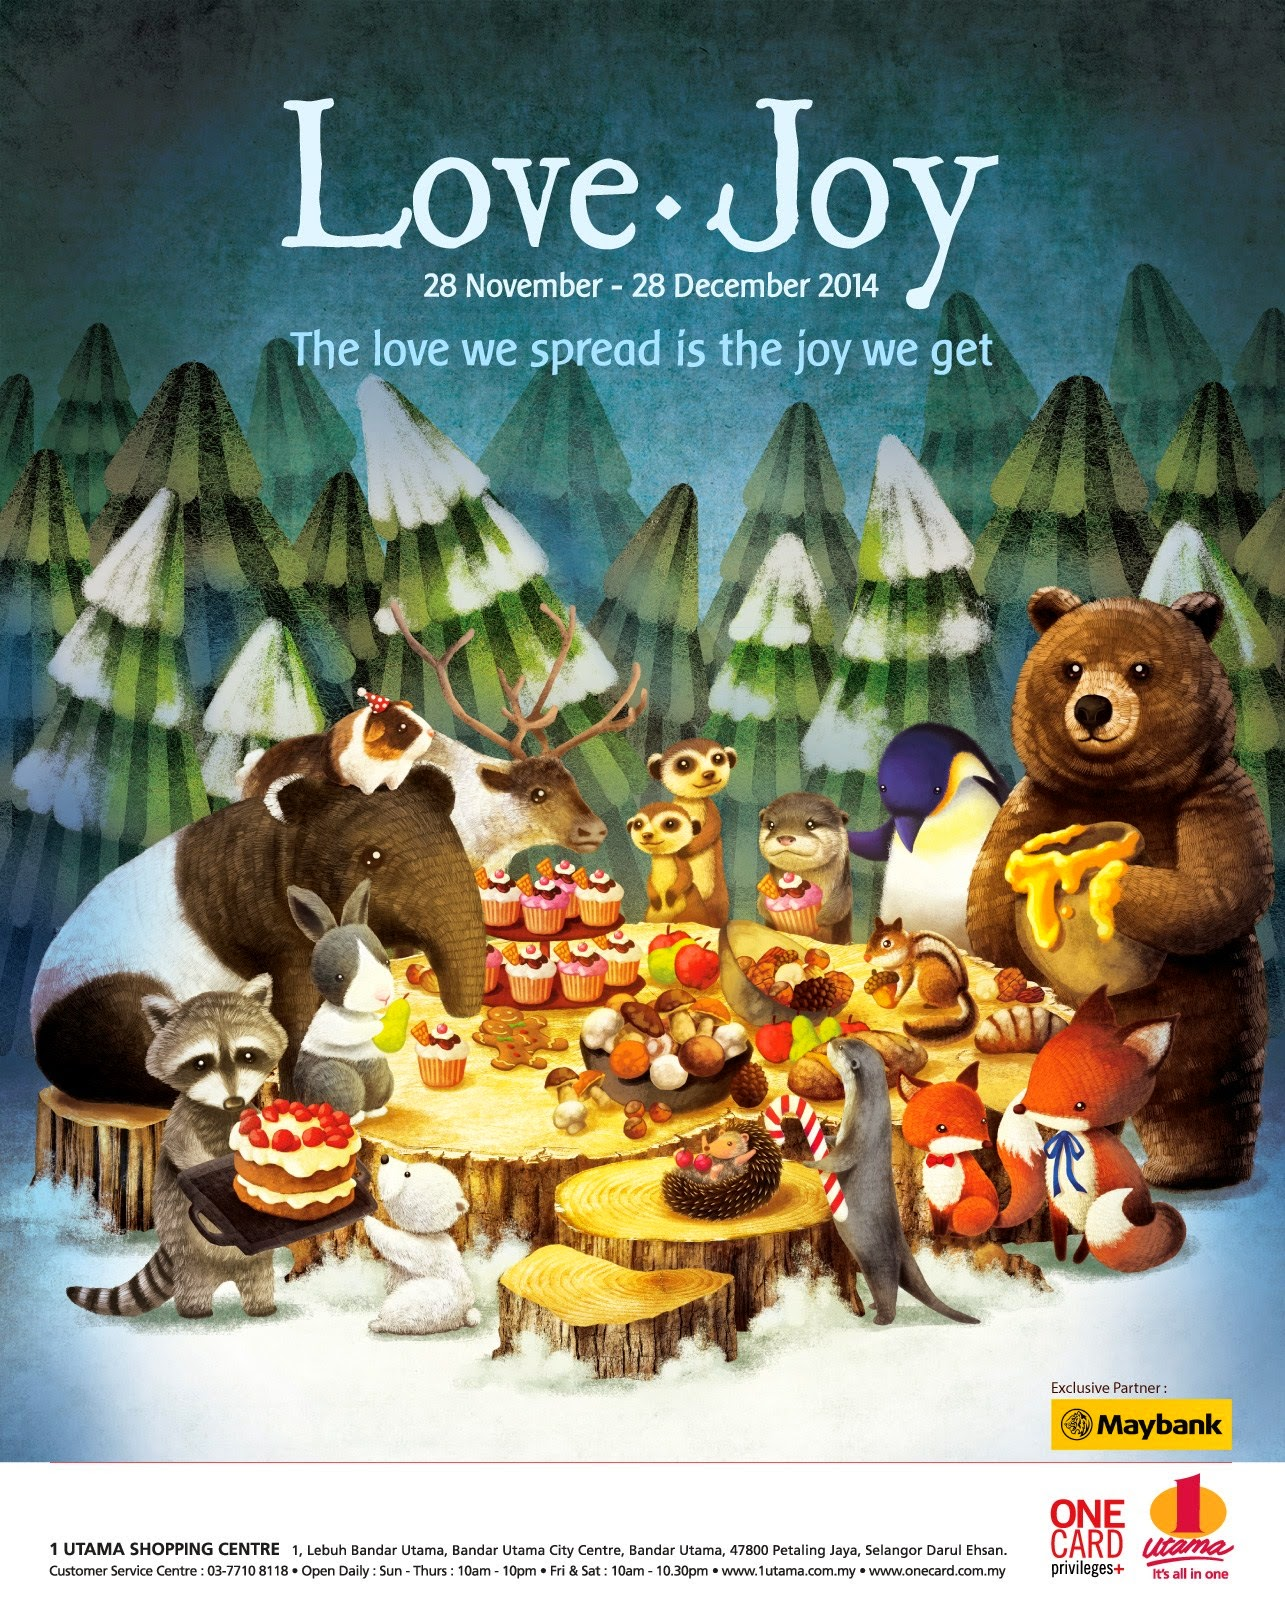 1Utama Shopping Centre- A Rustic Woodland Christmas - Love & Joy